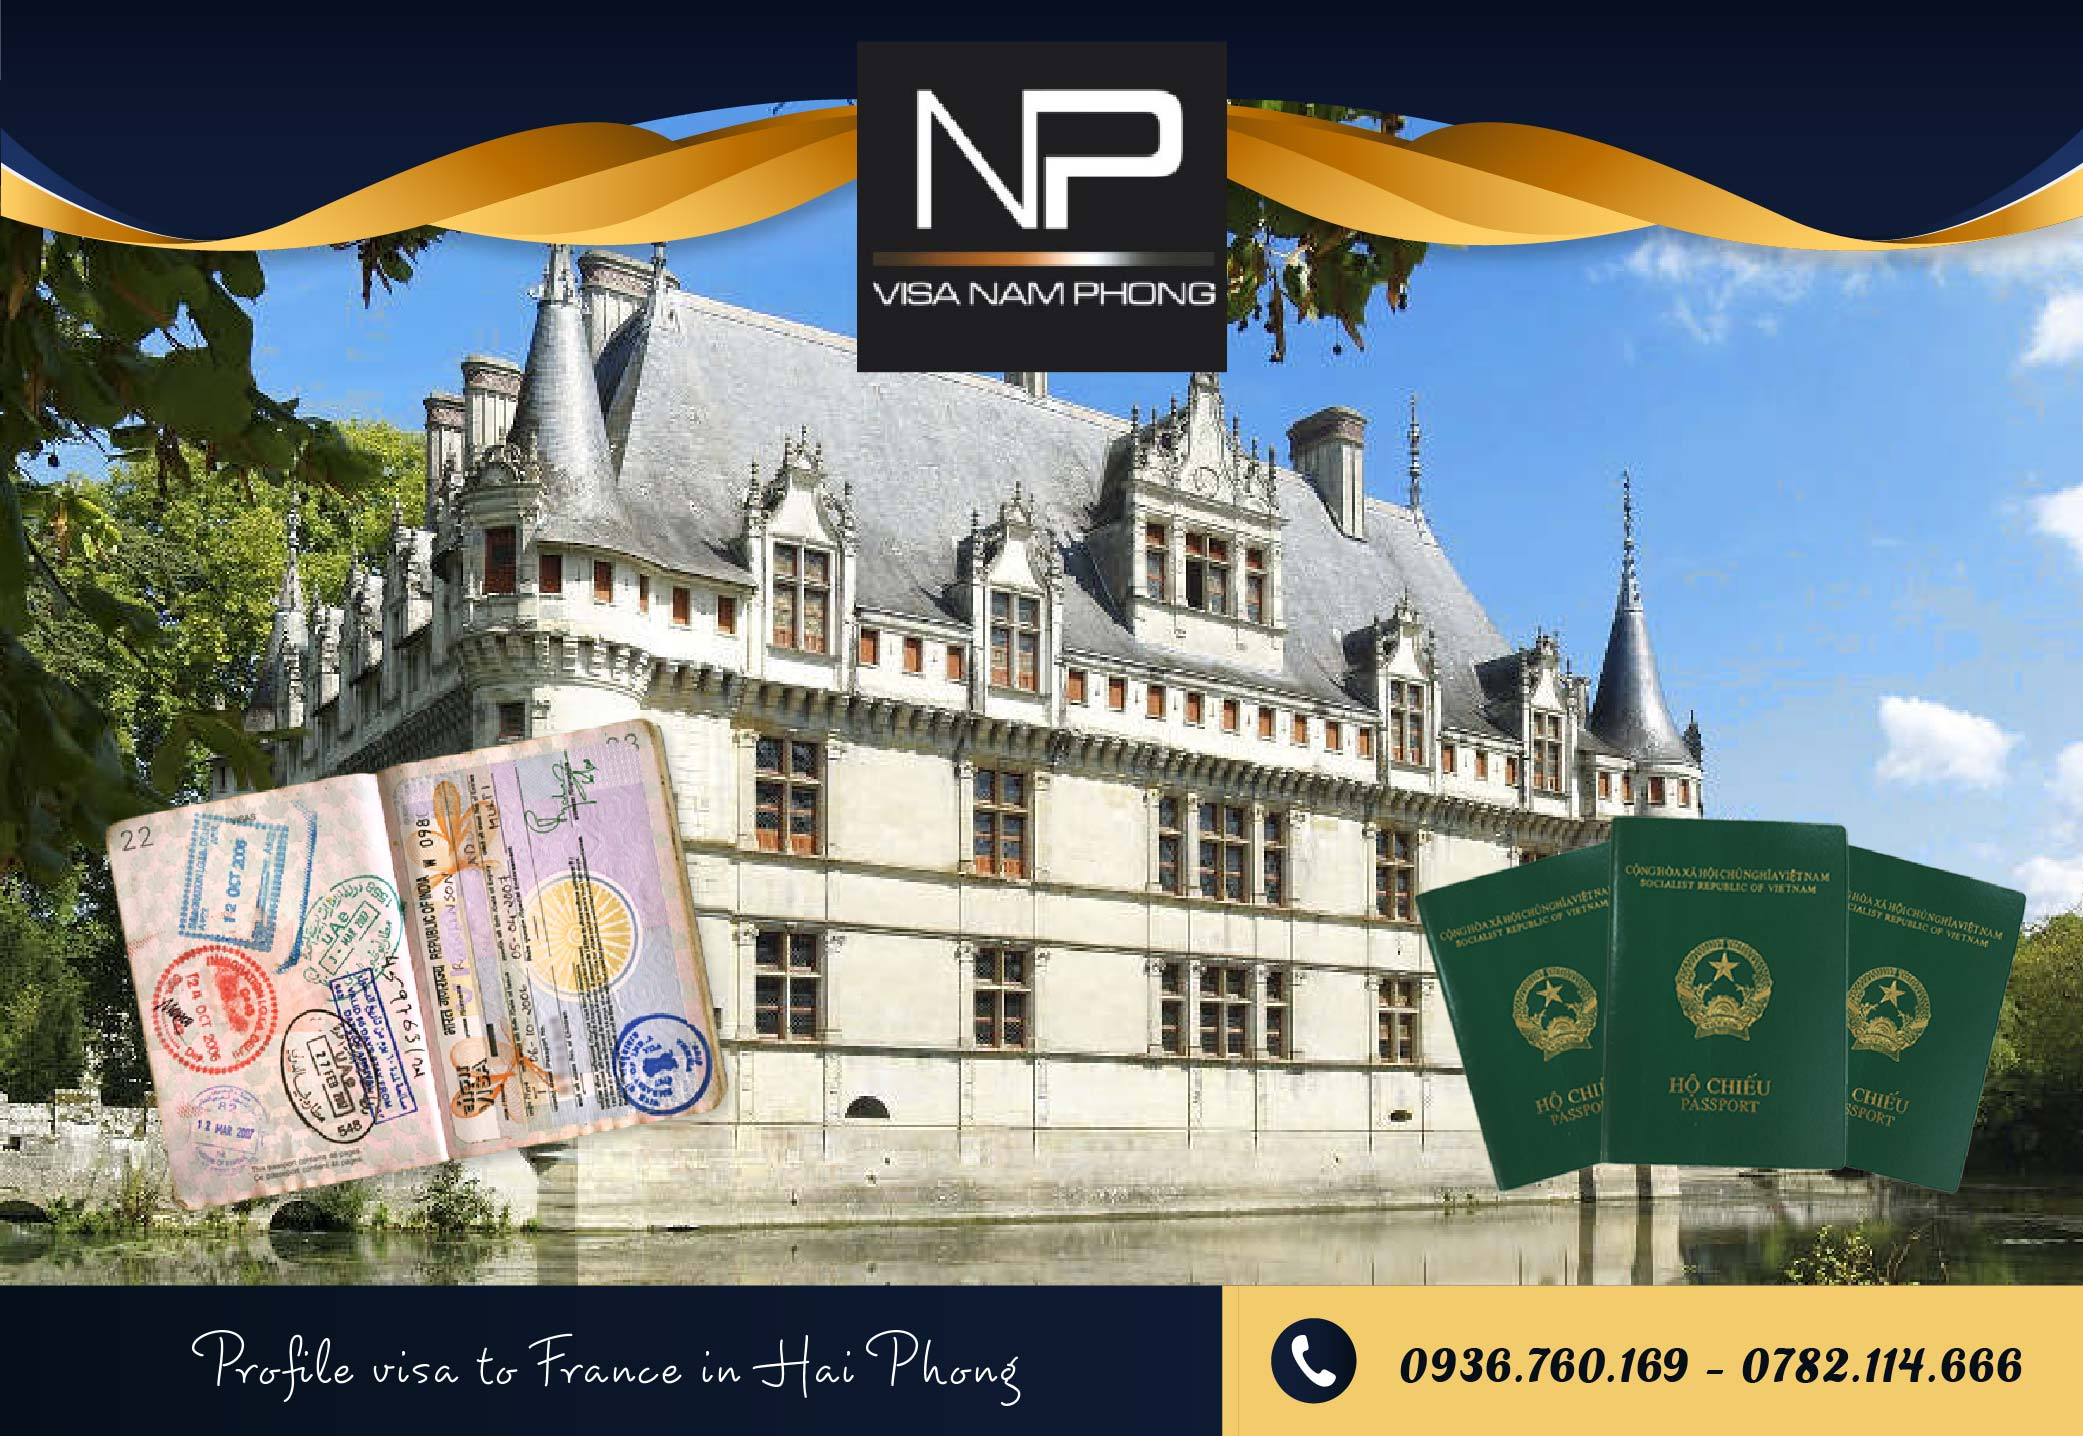 Profile visa to France in Hai Phong